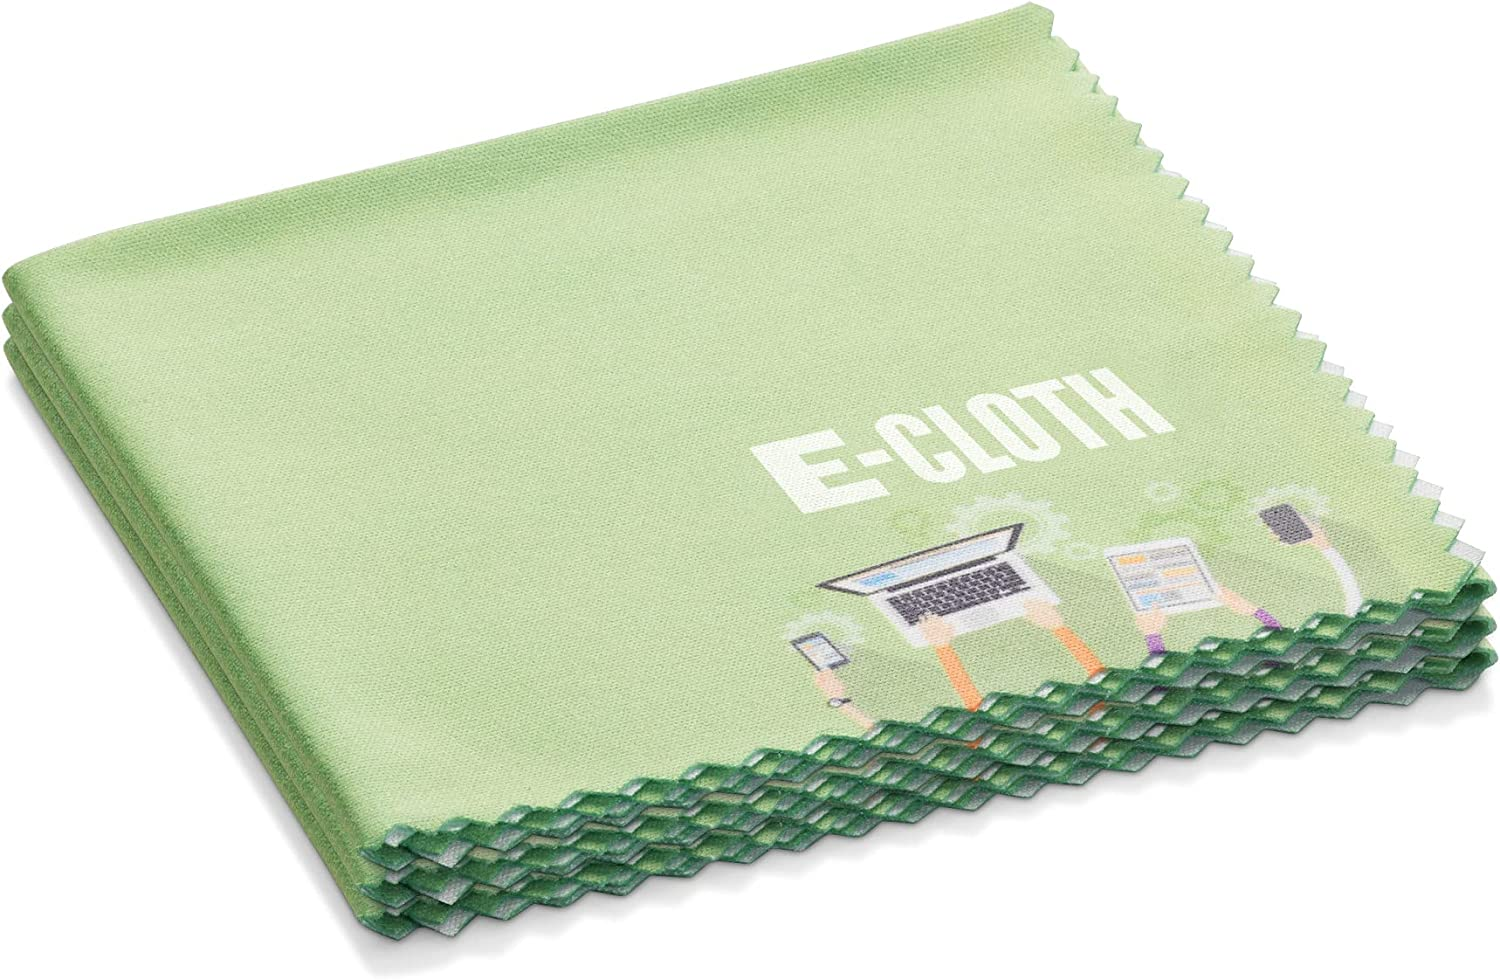 E-Cloth Reusable Personal Electronics Microfiber Cleaning Cloth for Phones, Tablets & Devices, 300 Wash Guarantee, Green, 3 Pack